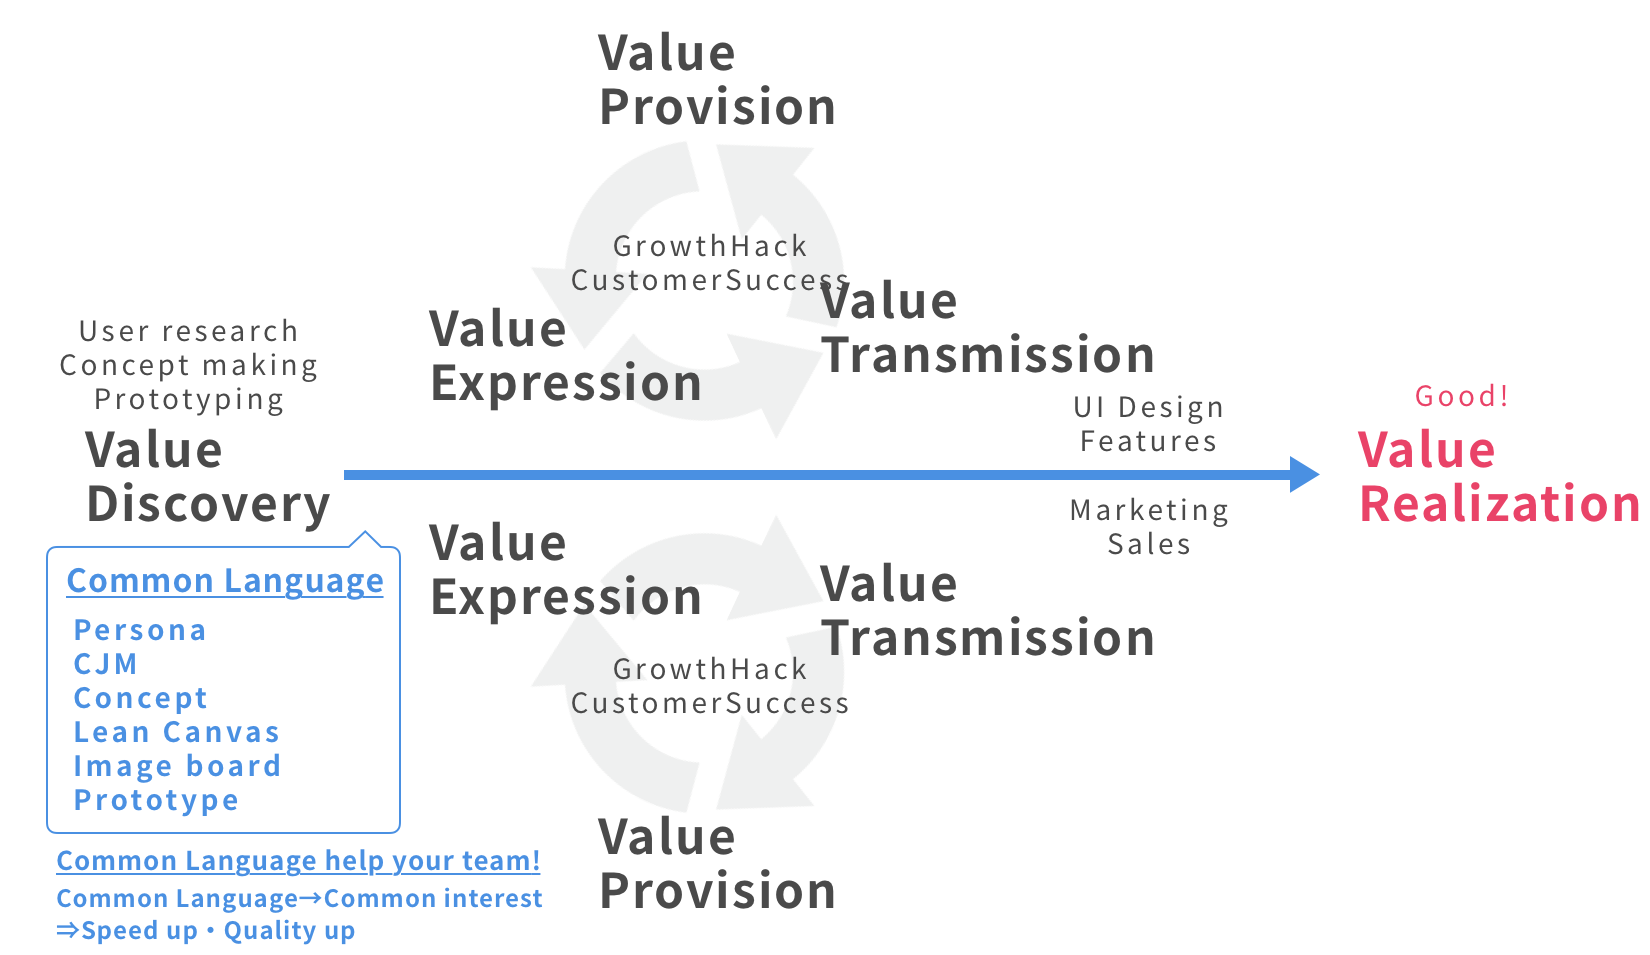 Value realization process and one of the most important thing